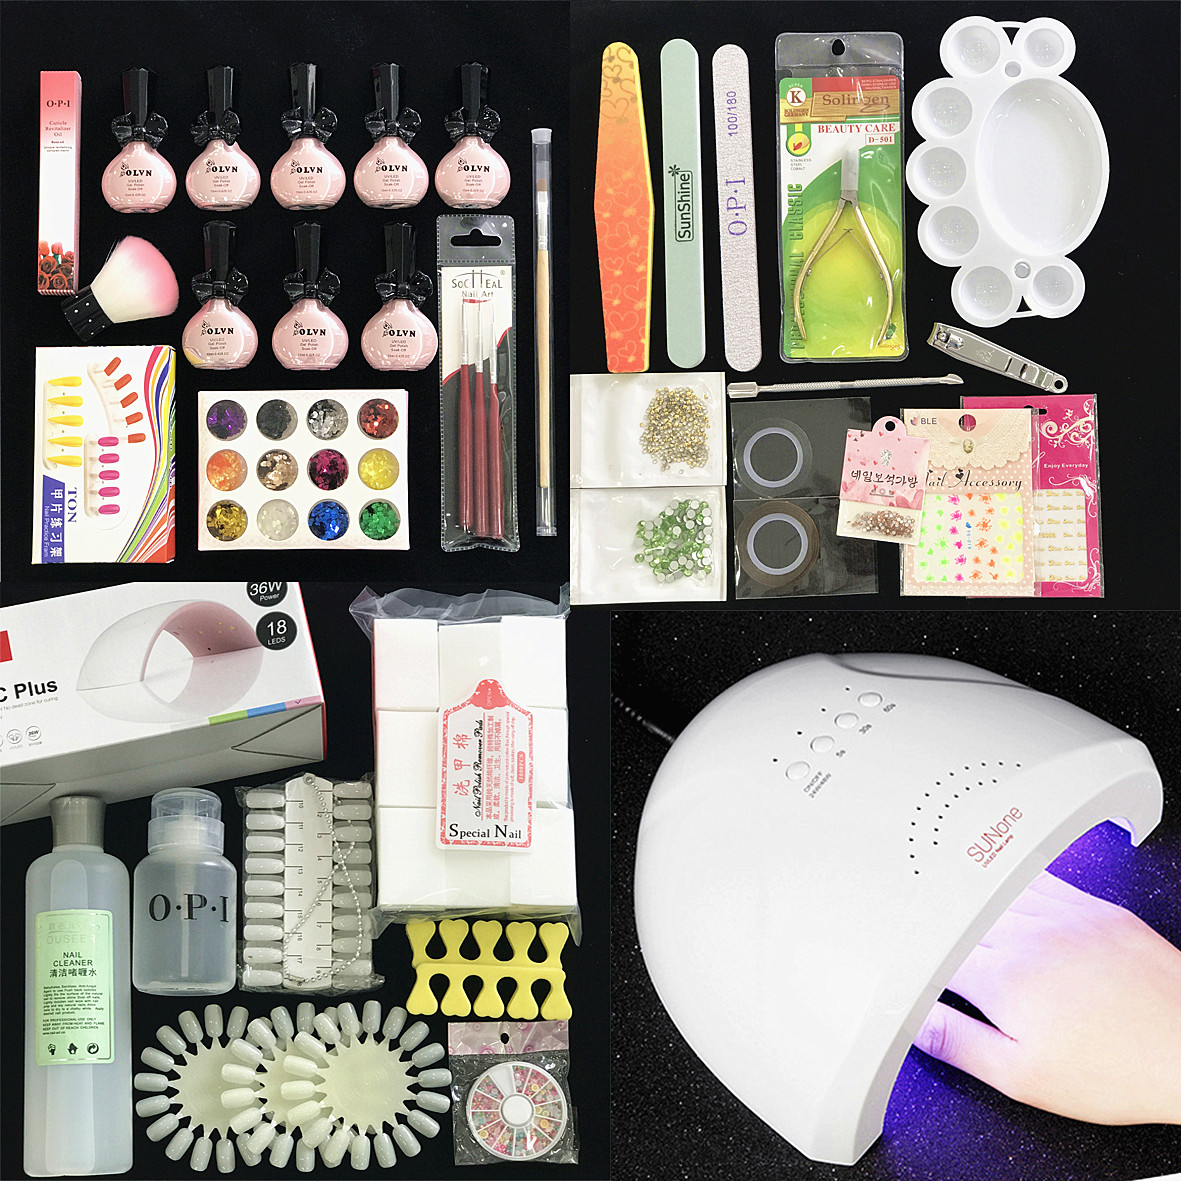 Lin Er Manicure activities online tutorial class Manicure beginners nail glue set phototherapy machine tool set set